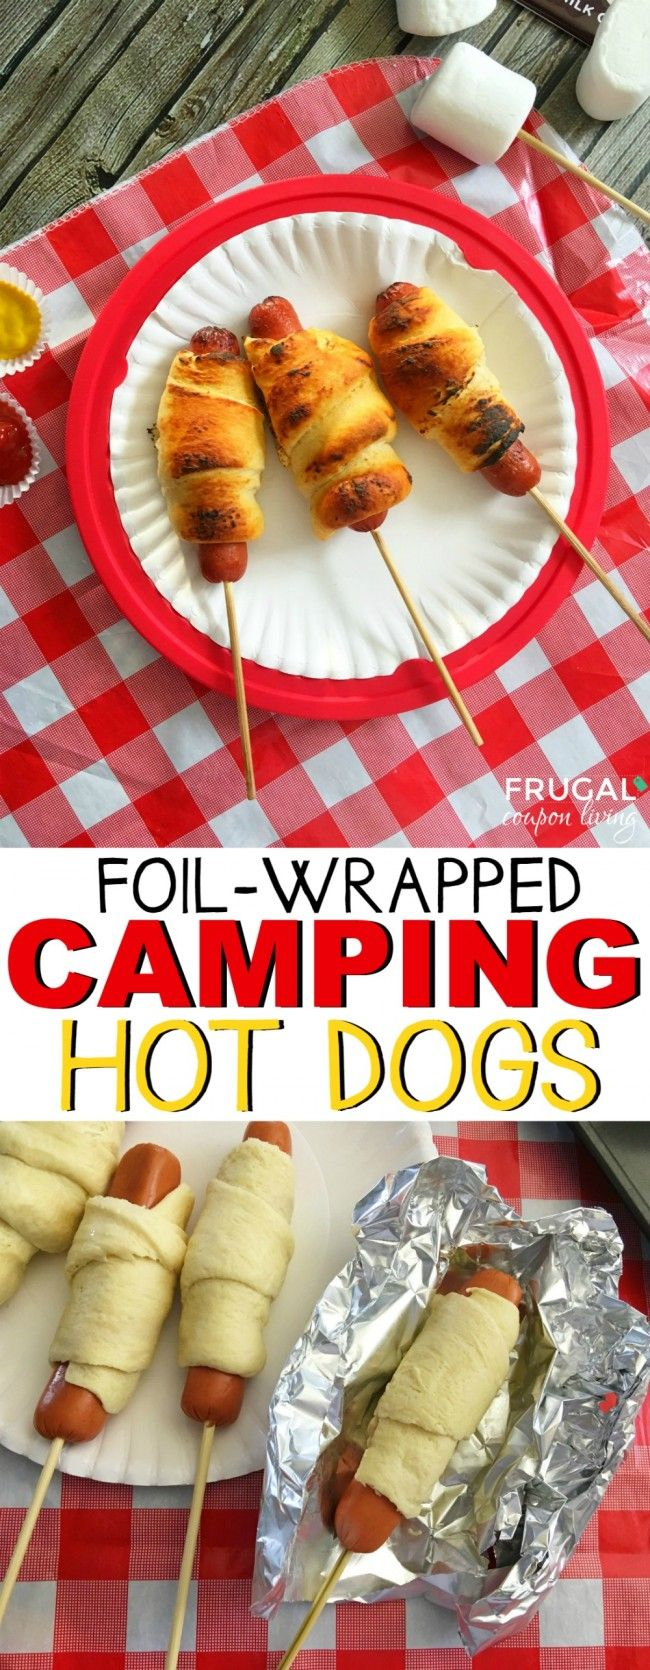 Make camping a snap with these easy and delicious camping recipes that are perfect for meal planning! Some of these recipes can be made ahead of time so you can spend more time with your family and less time cooking.